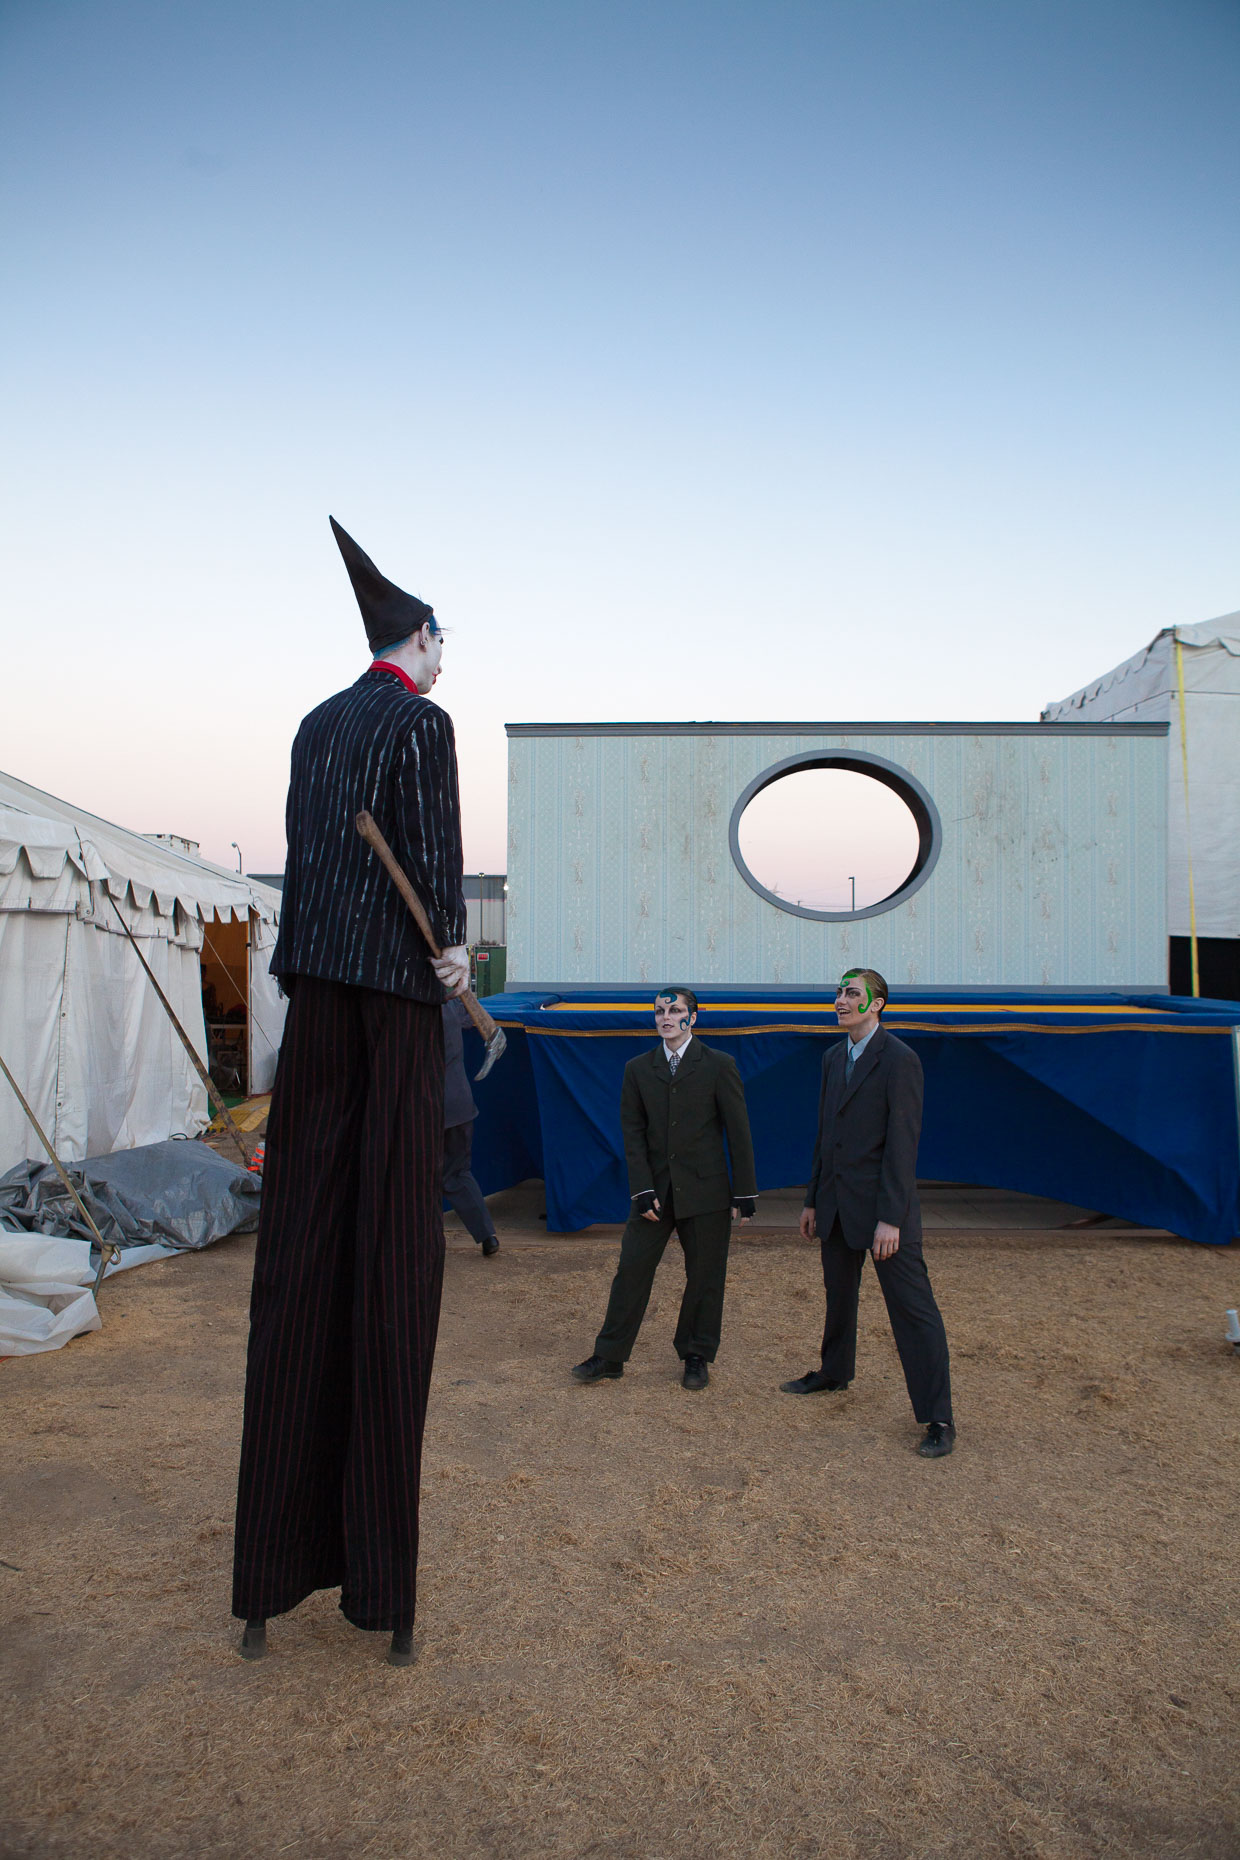 Behind the scenes at Cirque Berzerk circus performers, by David Zaitz